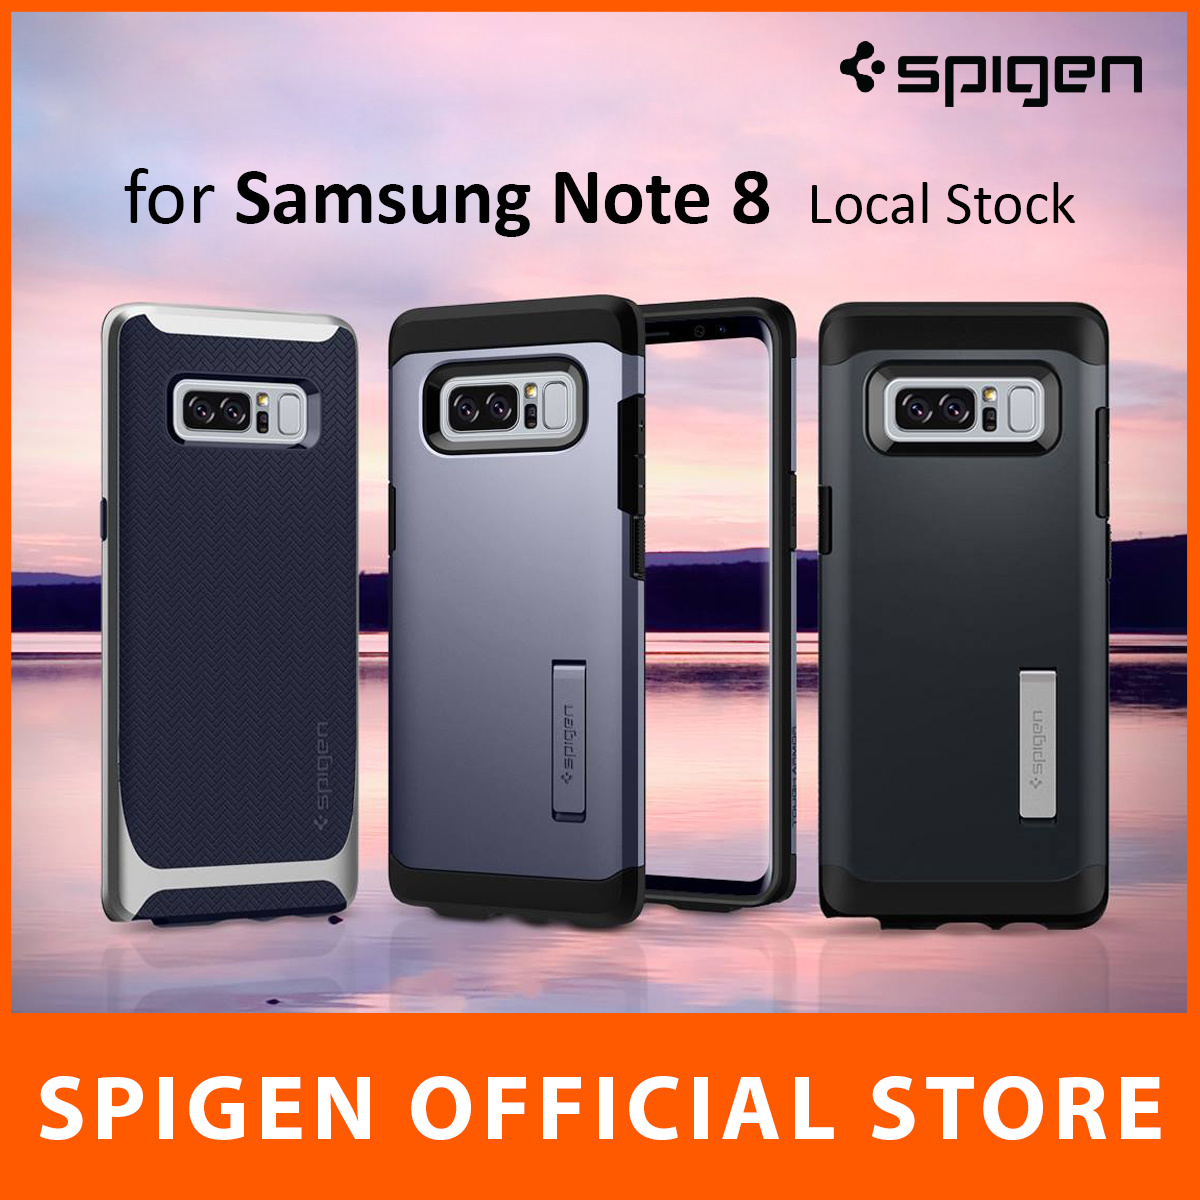 Qoo10 Spigen Note 8 Case Mobile Accessories Military Armor Samsung Galaxy S7 Flat Crystal Shell Original Show All Item Images